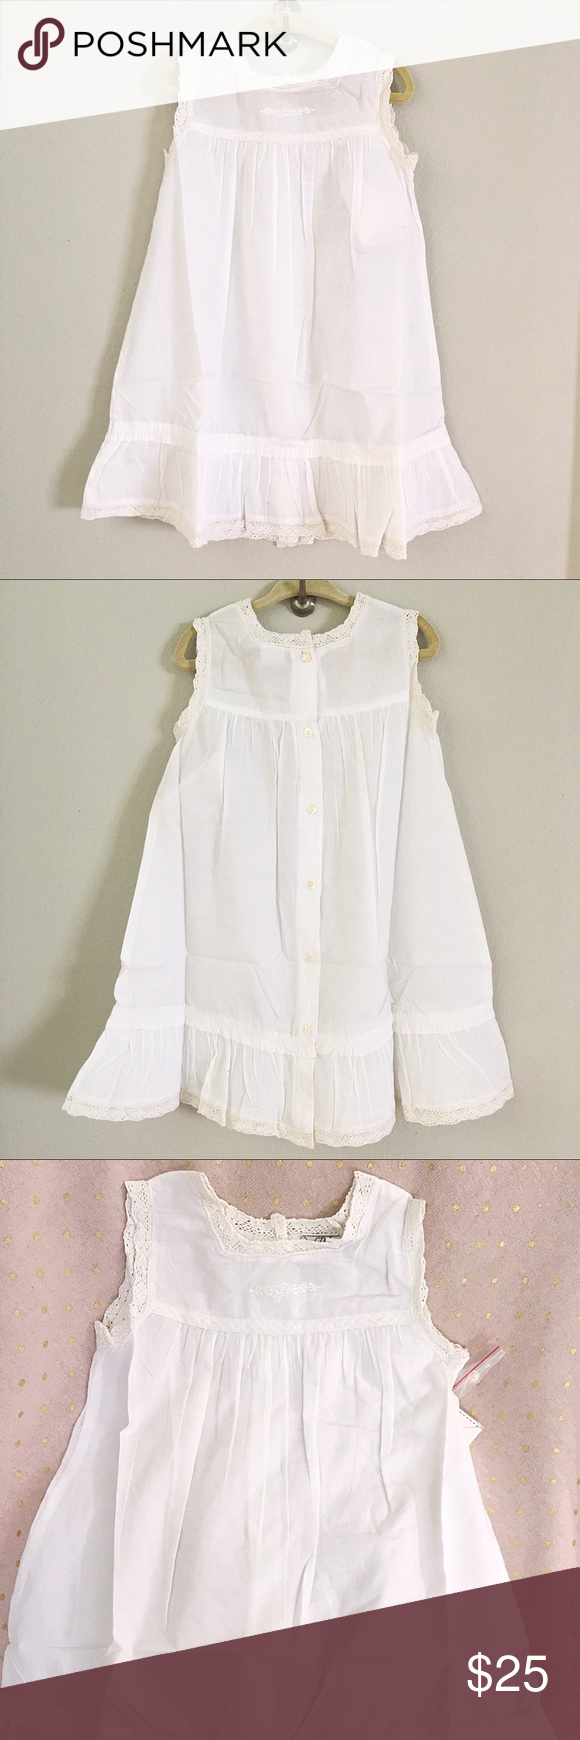 Girls White Embroidery Pinafore Dress 2t 3t 4t Girls White Dress Pinafore Dress Casual Dresses [ 1740 x 580 Pixel ]